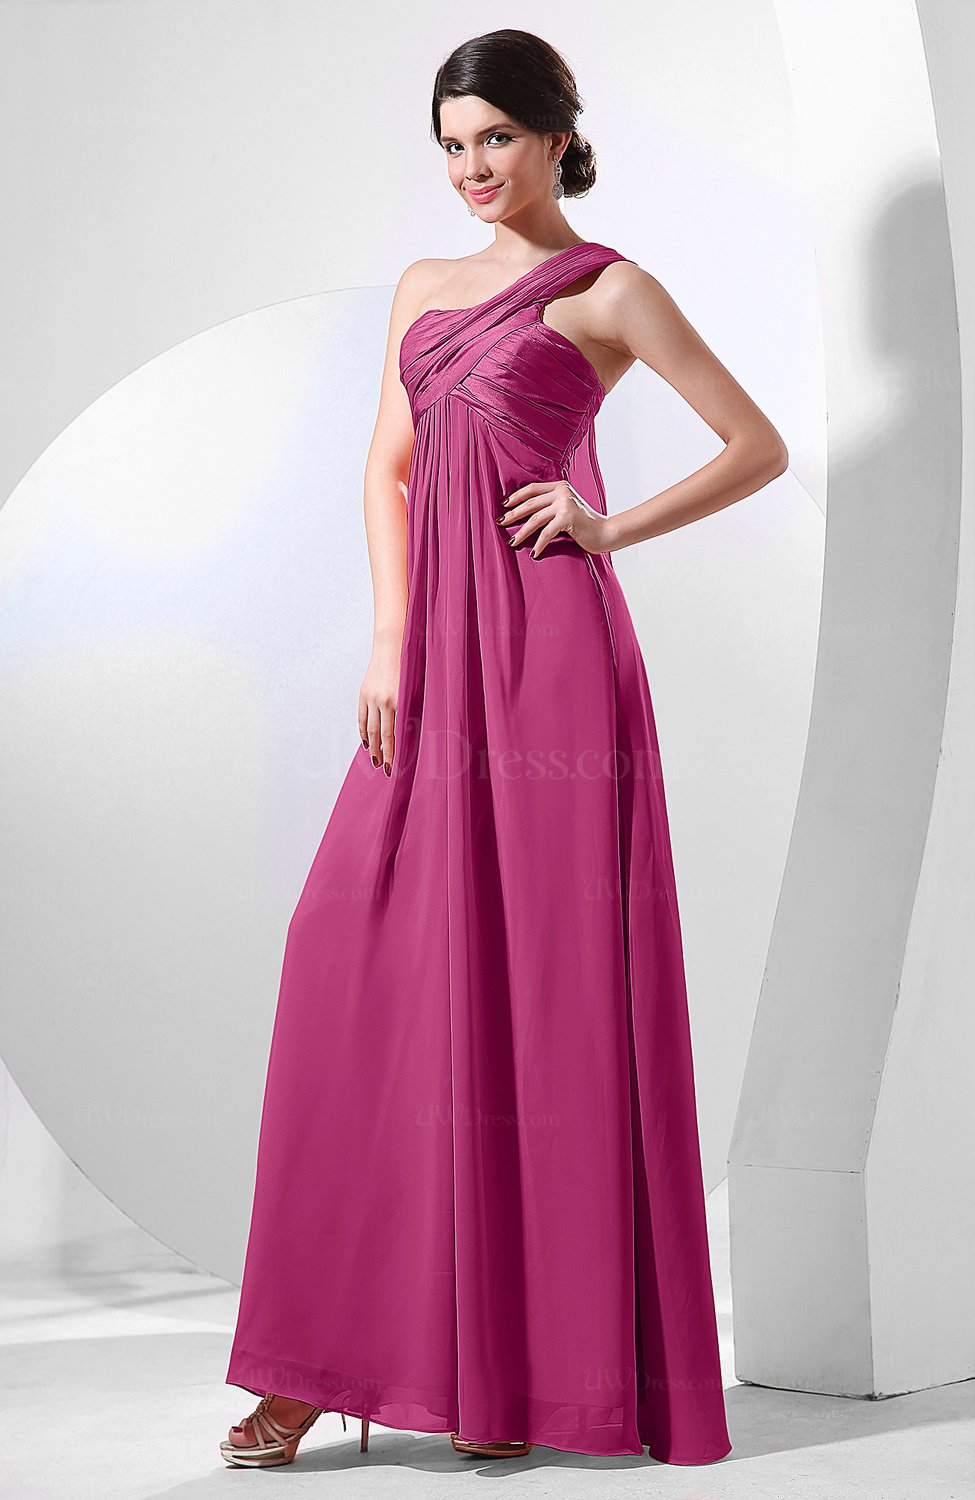 8ebbed2f28a Hot Pink Elegant Empire One Shoulder Sleeveless Chiffon Bridesmaid Dresses  (Style D90601)